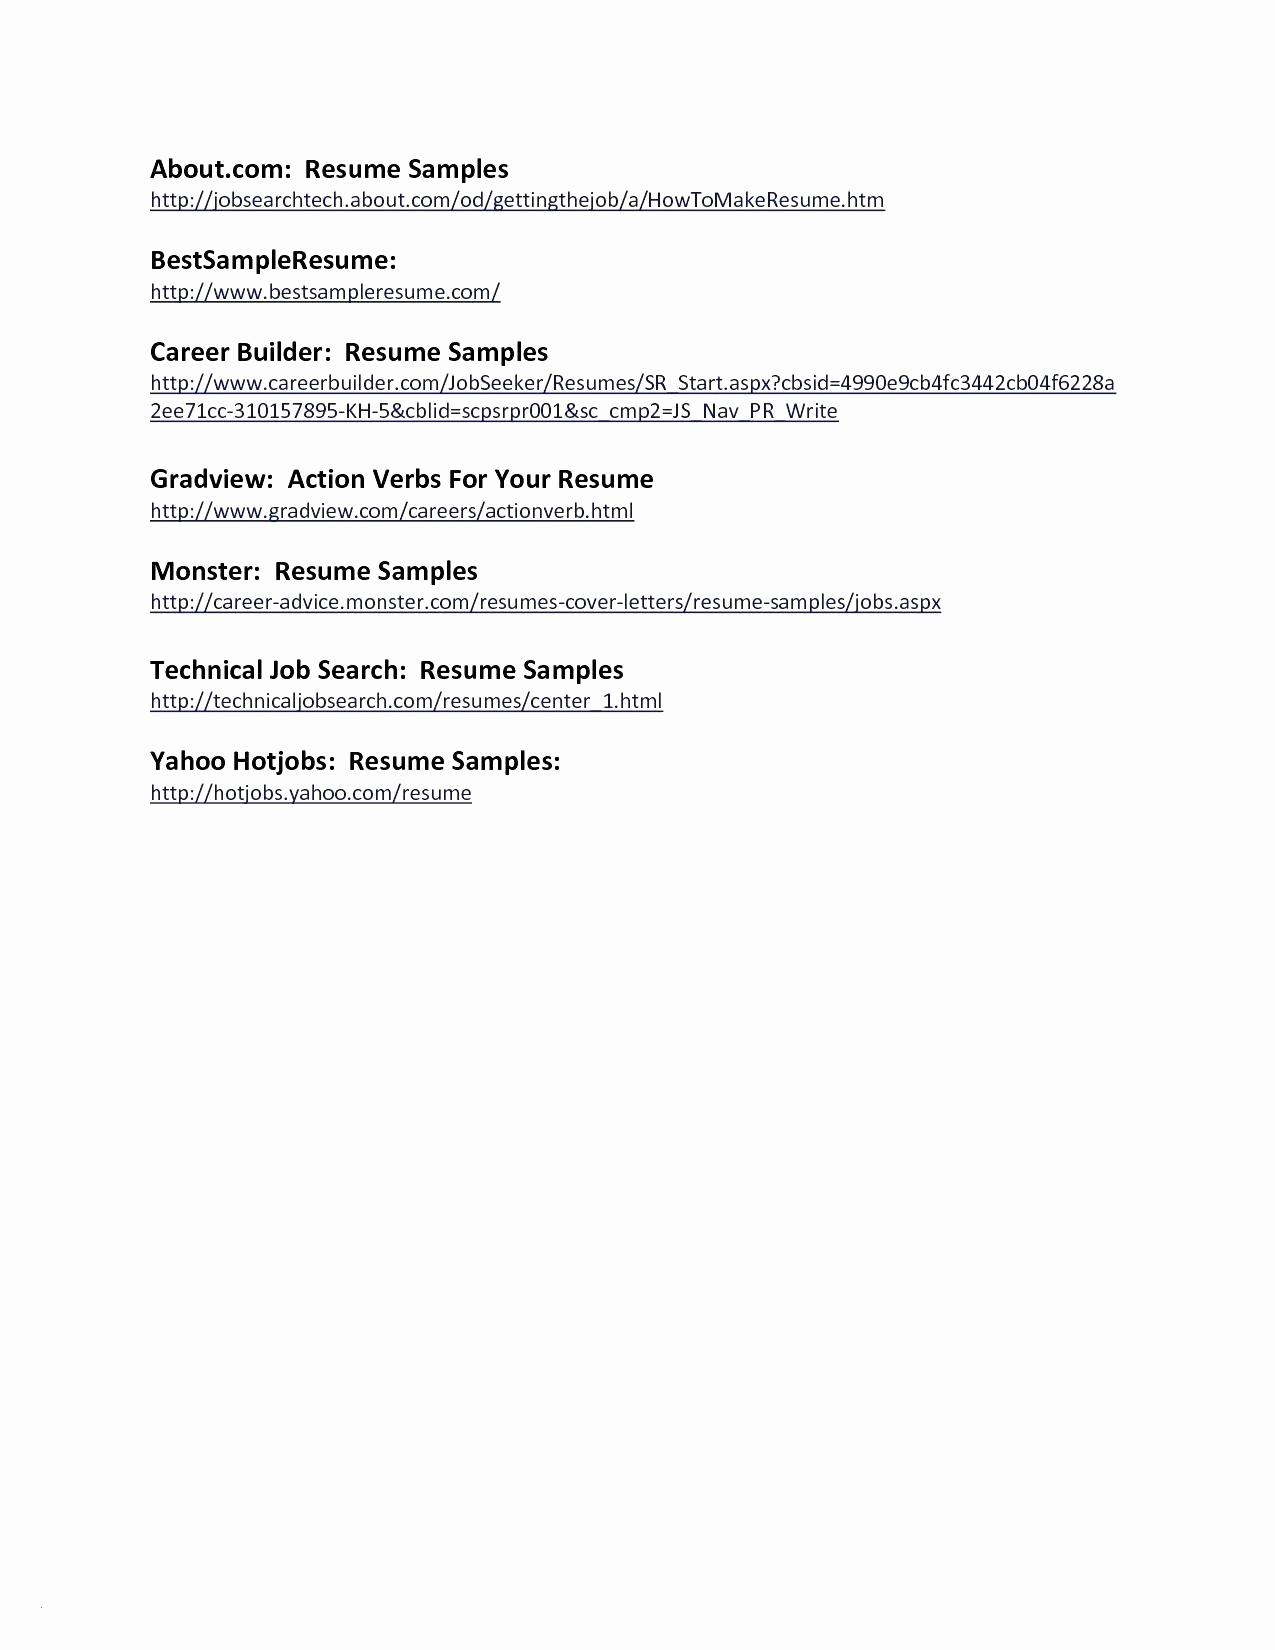 Service Industry Resume Templates - Resume format for Automobile Industry New Automotive Industry Resume